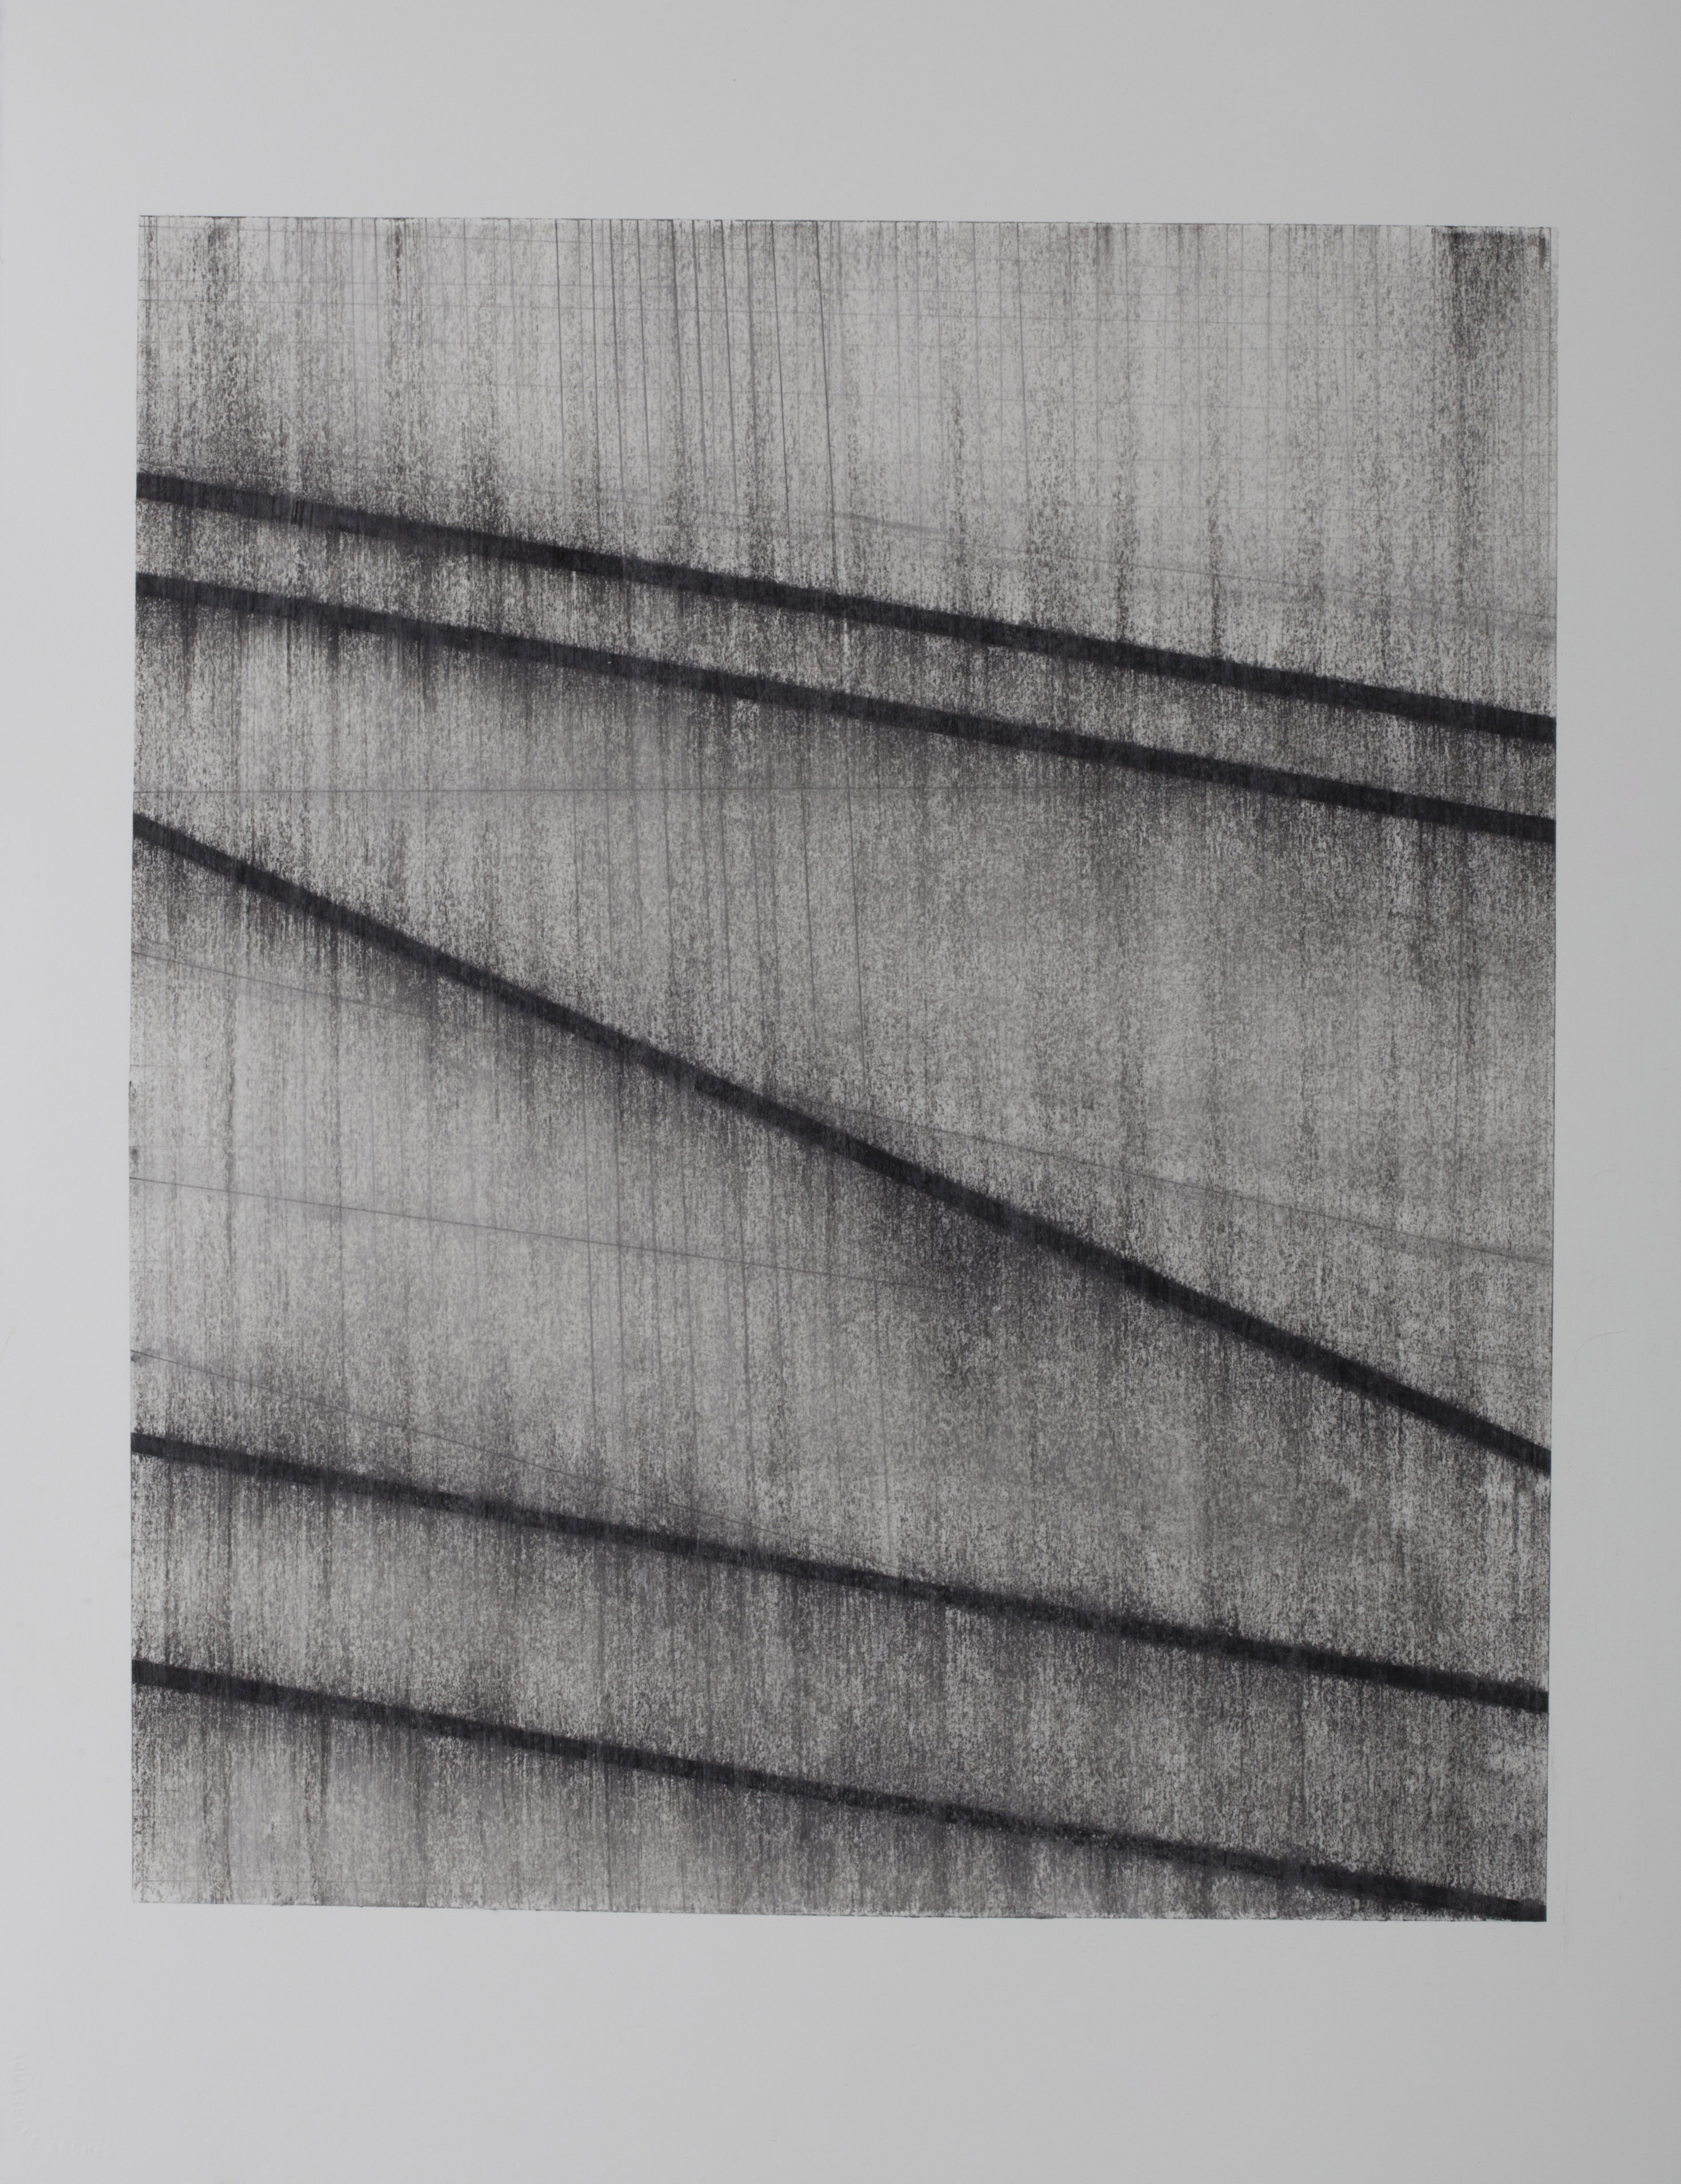 Partita 5, 2013, charcoal, graphite and mixed media on Arches HP 300g, 76 x 56 cm